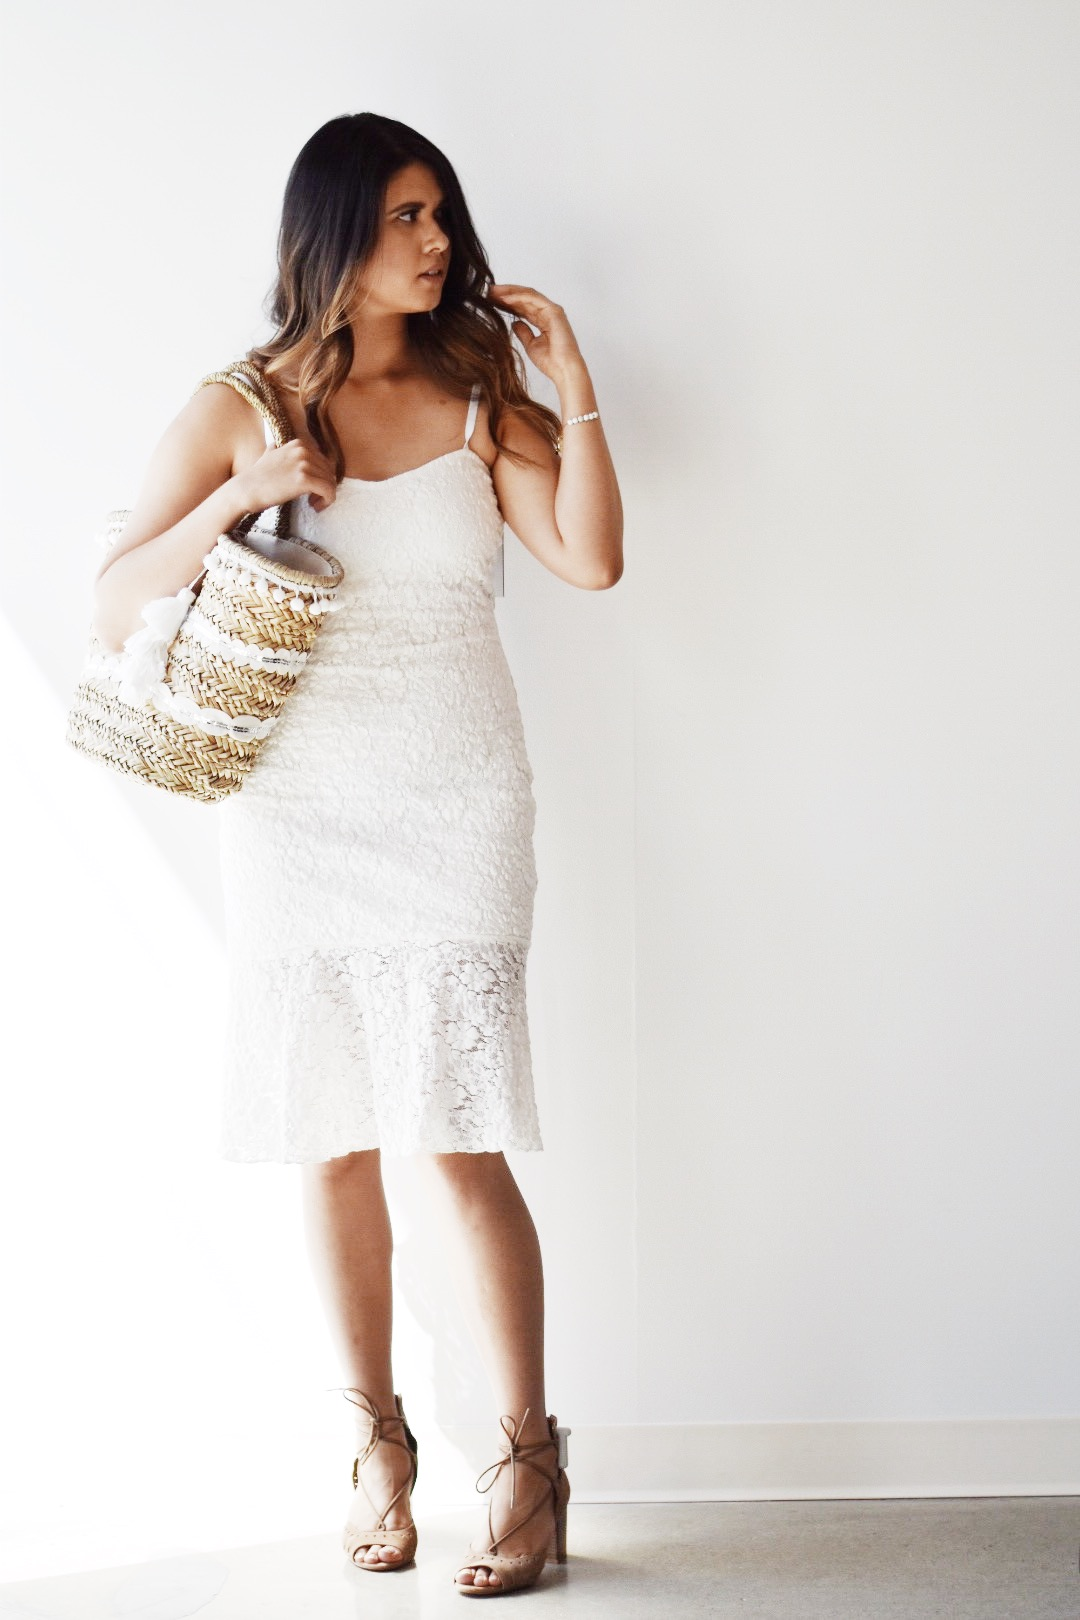 Drea Marie shares what to wear to Packwood Grand this year! Use this inspo for any summer event outfits and Del Mar outfits too. Check it out!!!